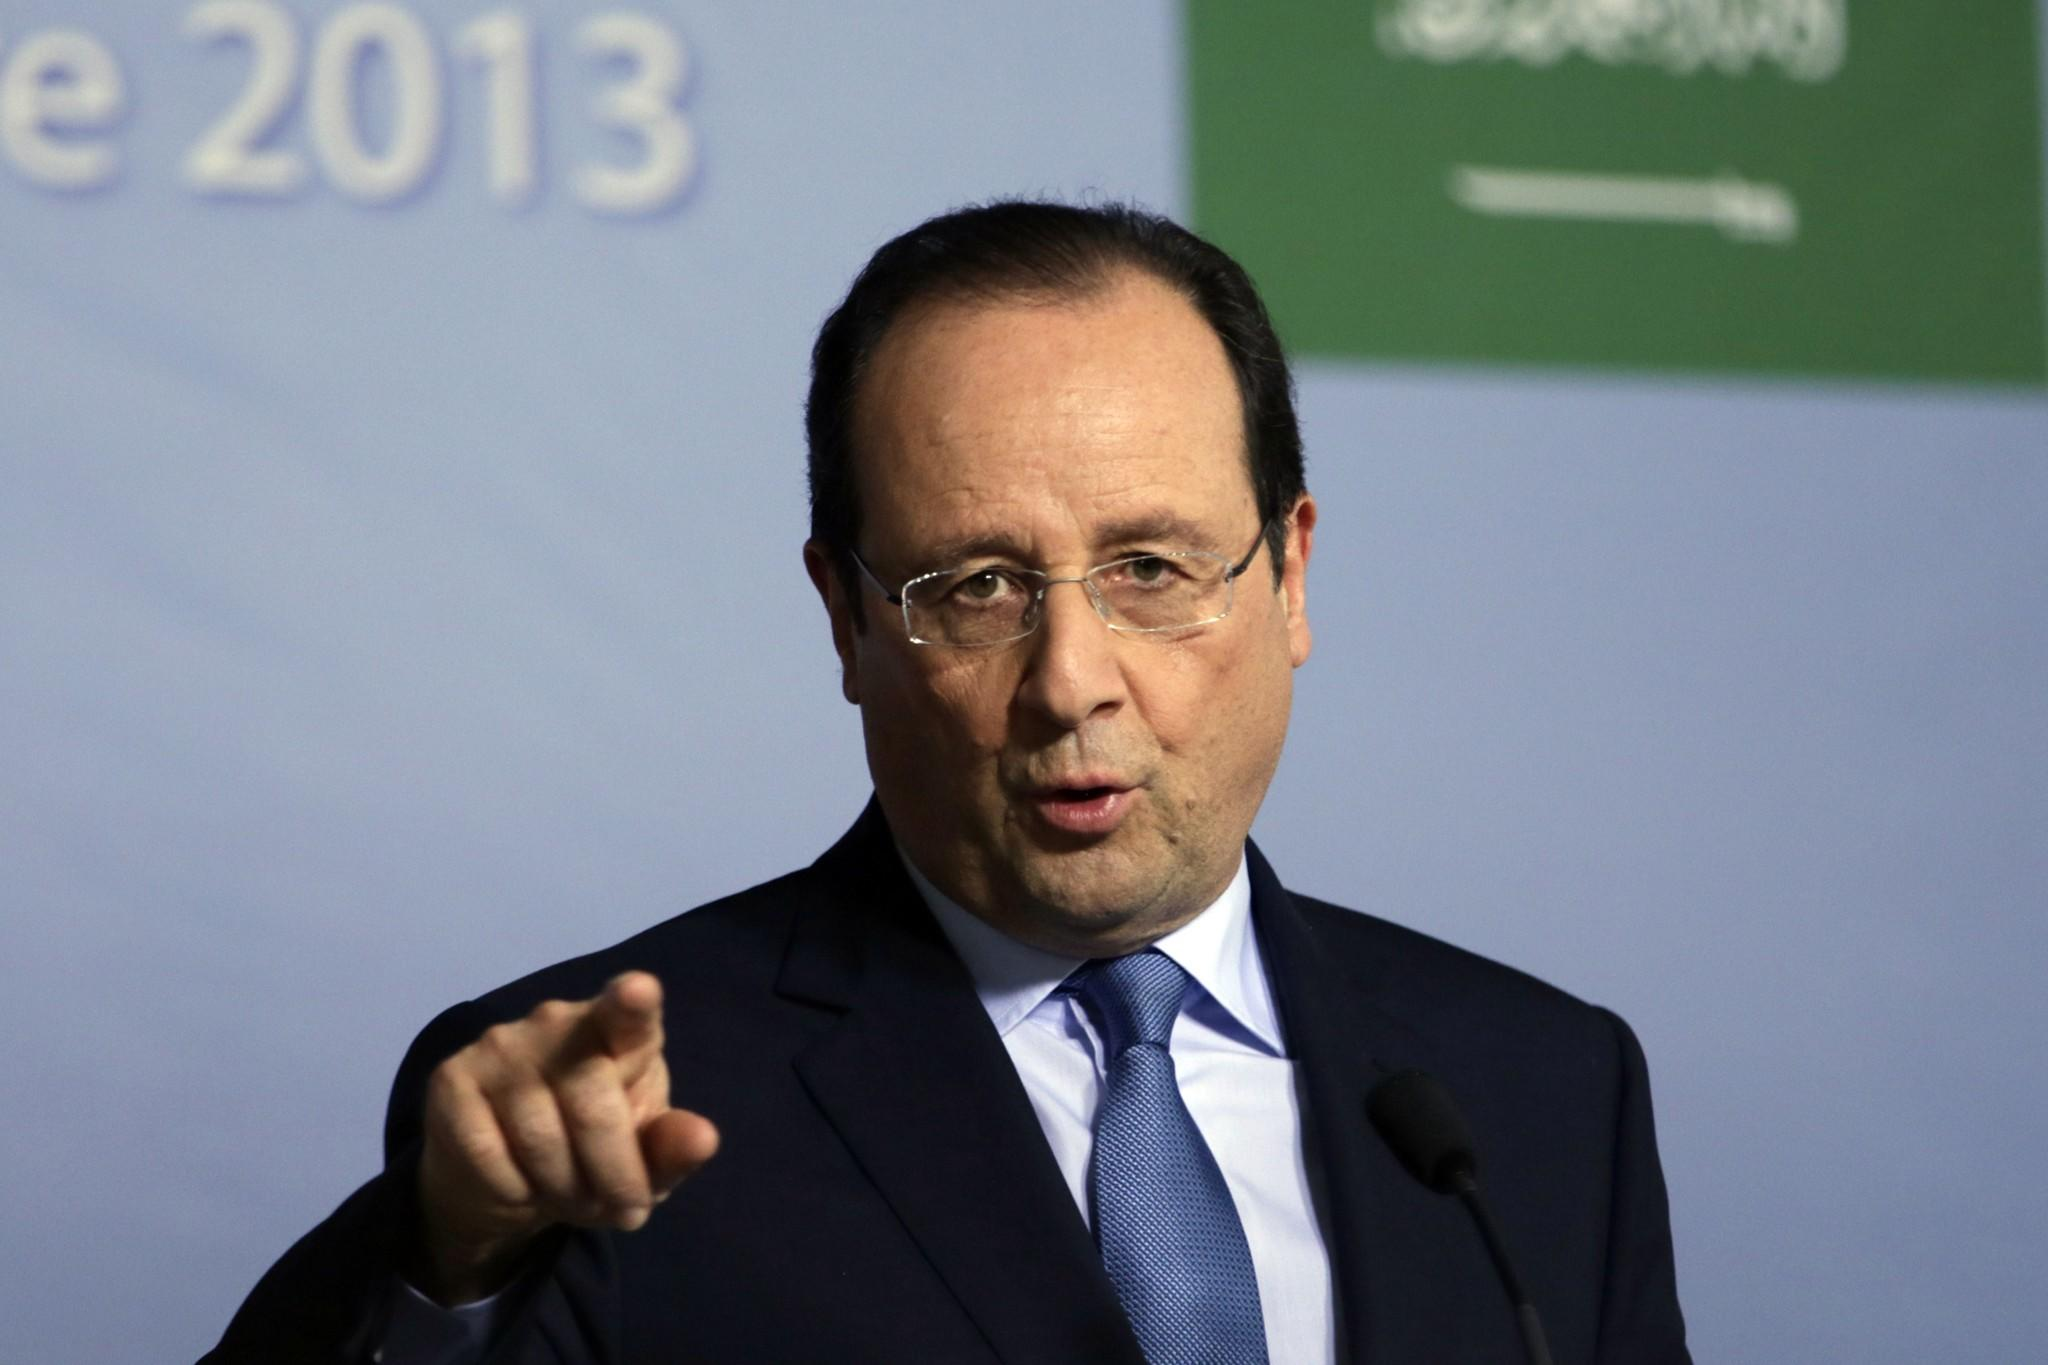 A proposal by President Francois Hollande will levy new taxes on companies that pay high salaries.